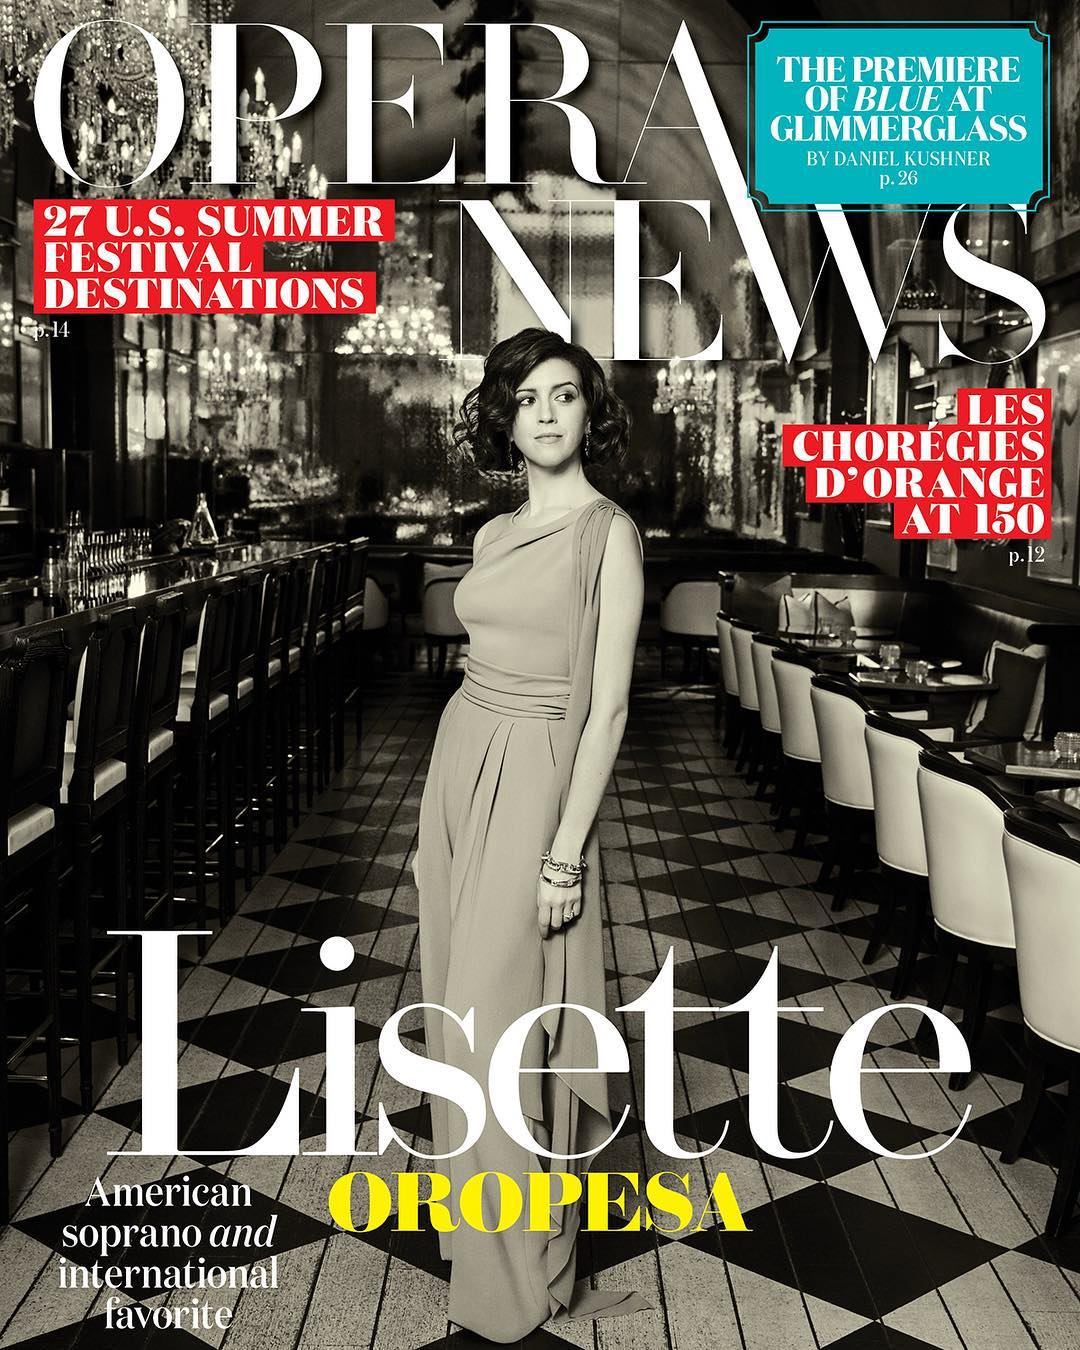 Lisette Oropesa is featured in Opera News, June 2019